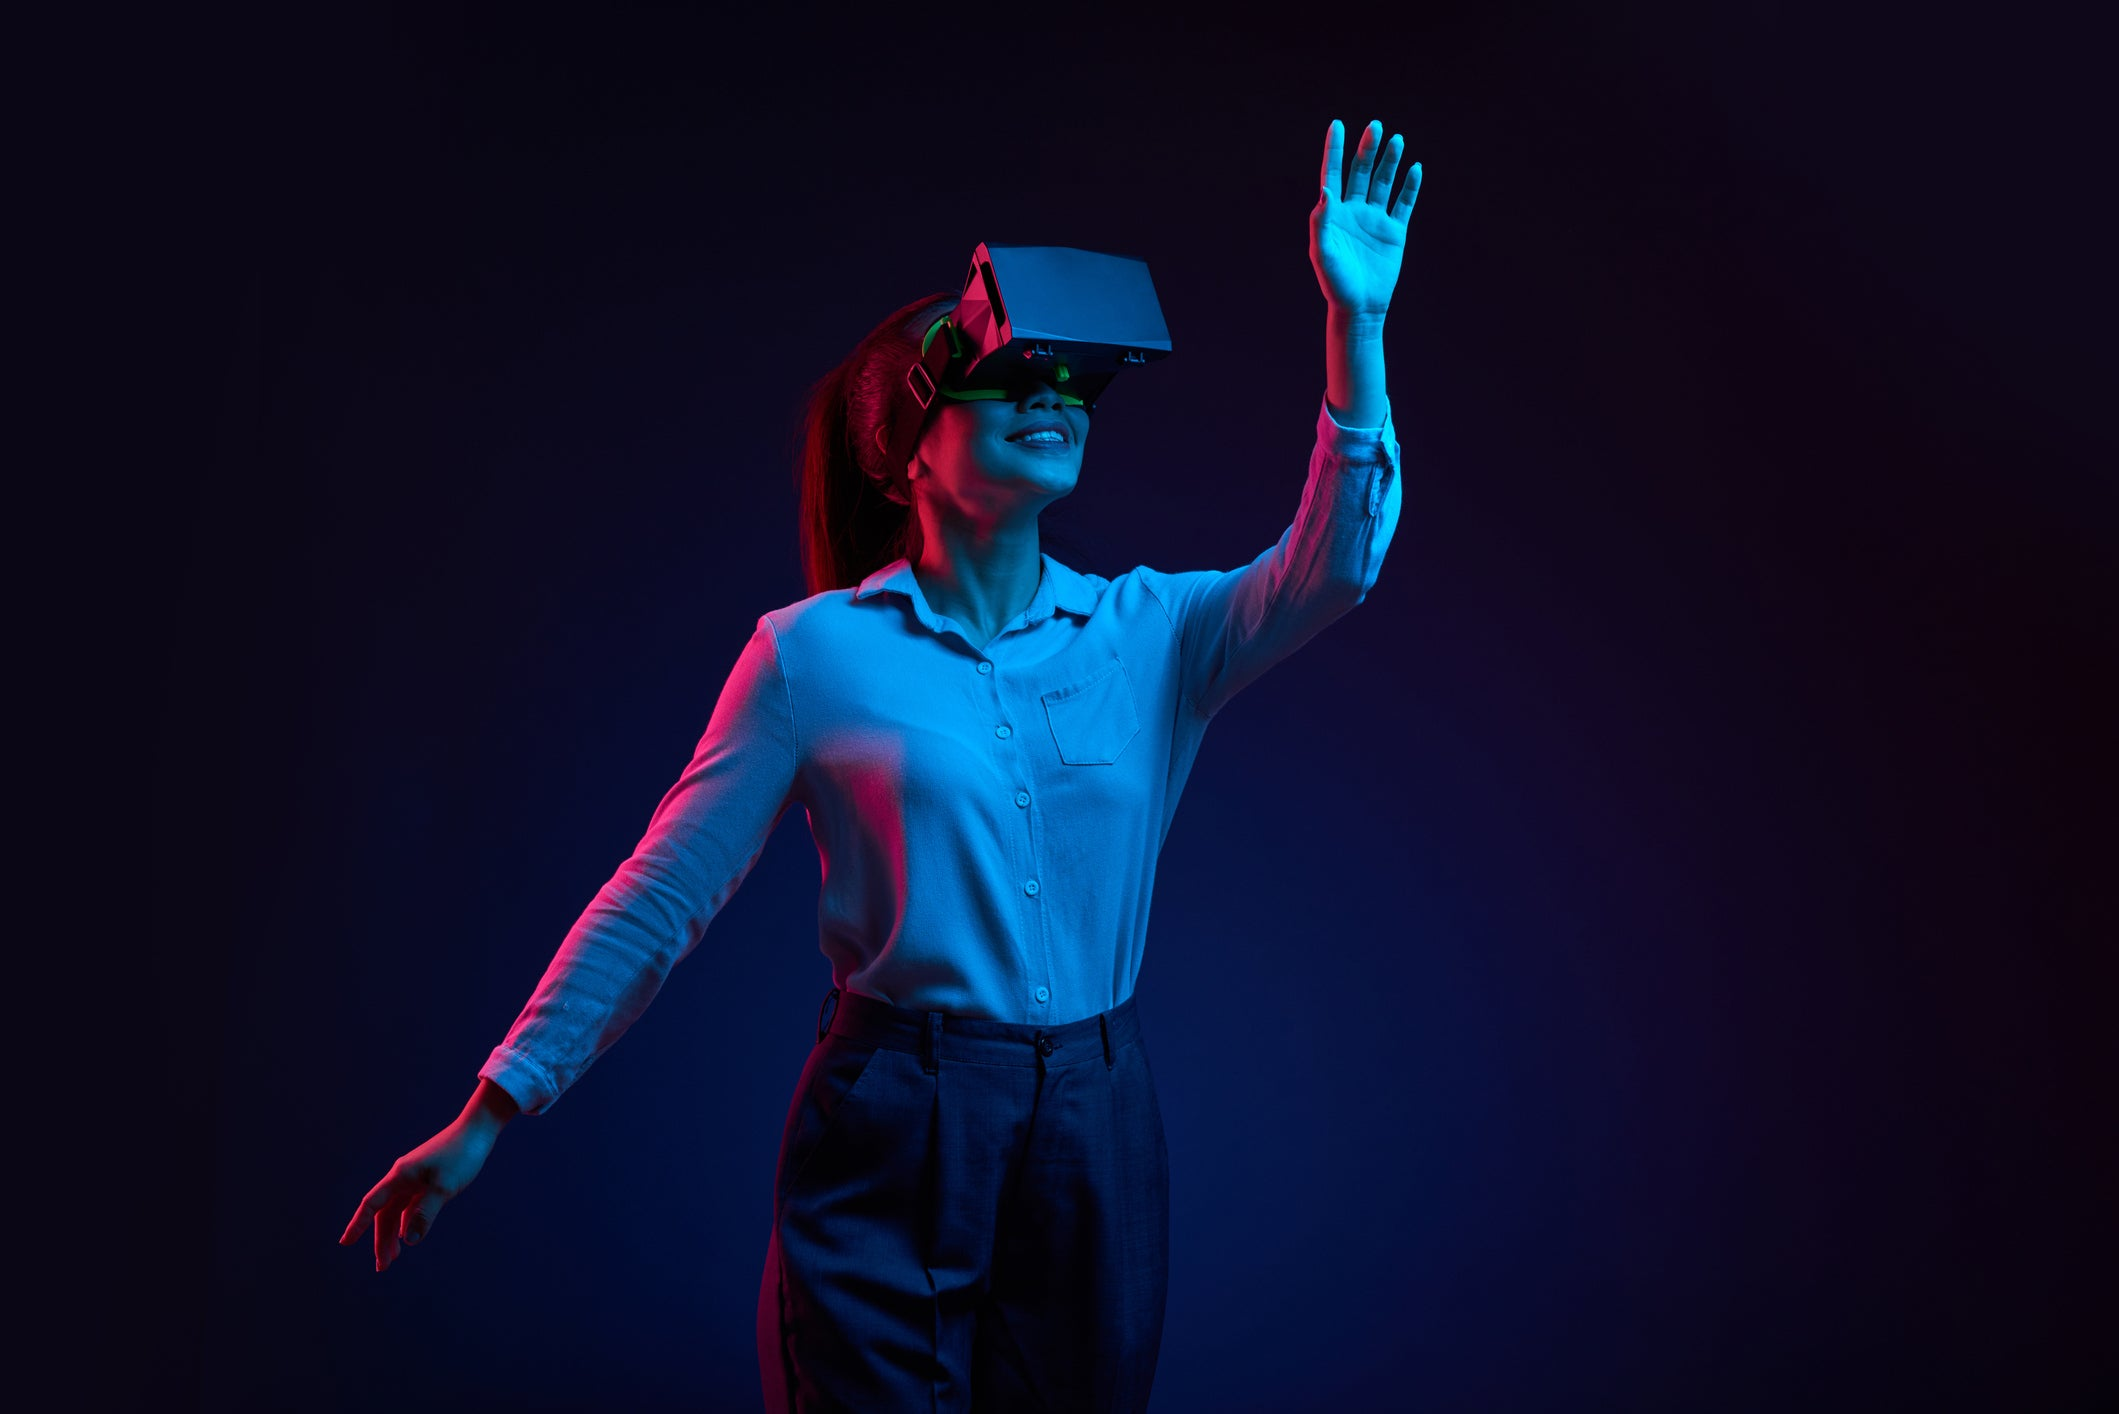 Virtual reality is a real game-changer